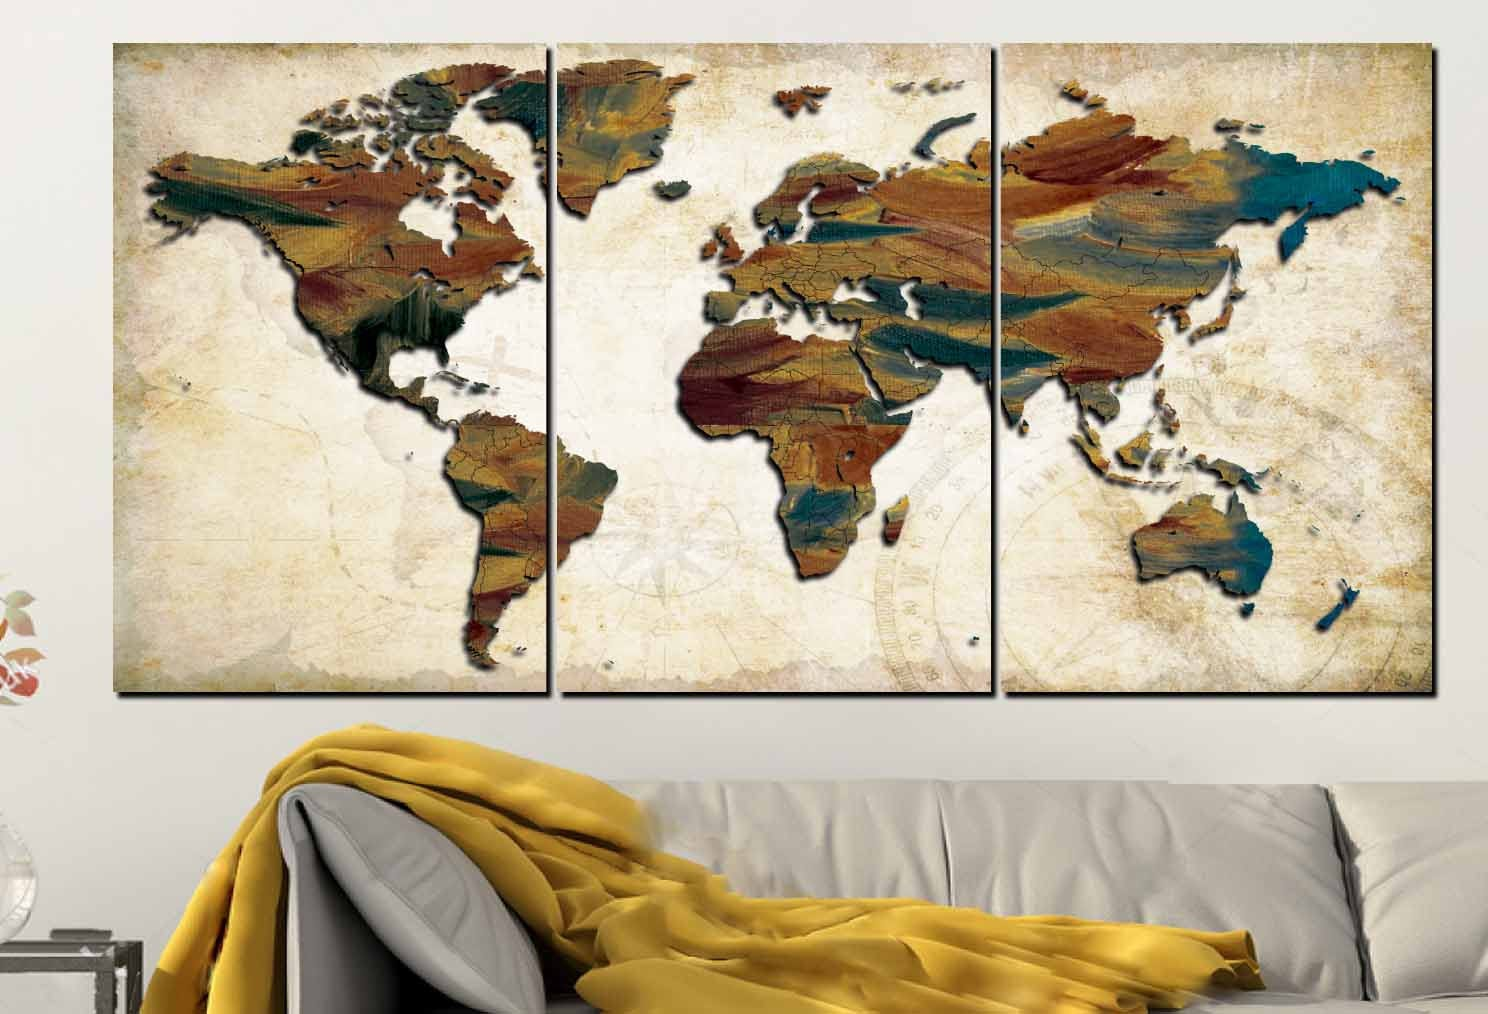 World map artworld map oil paintingworld map abstractword map world map artworld map oil paintingworld map abstractword map canvasworld map printworld map canvas artworld map paintingworld map gumiabroncs Choice Image